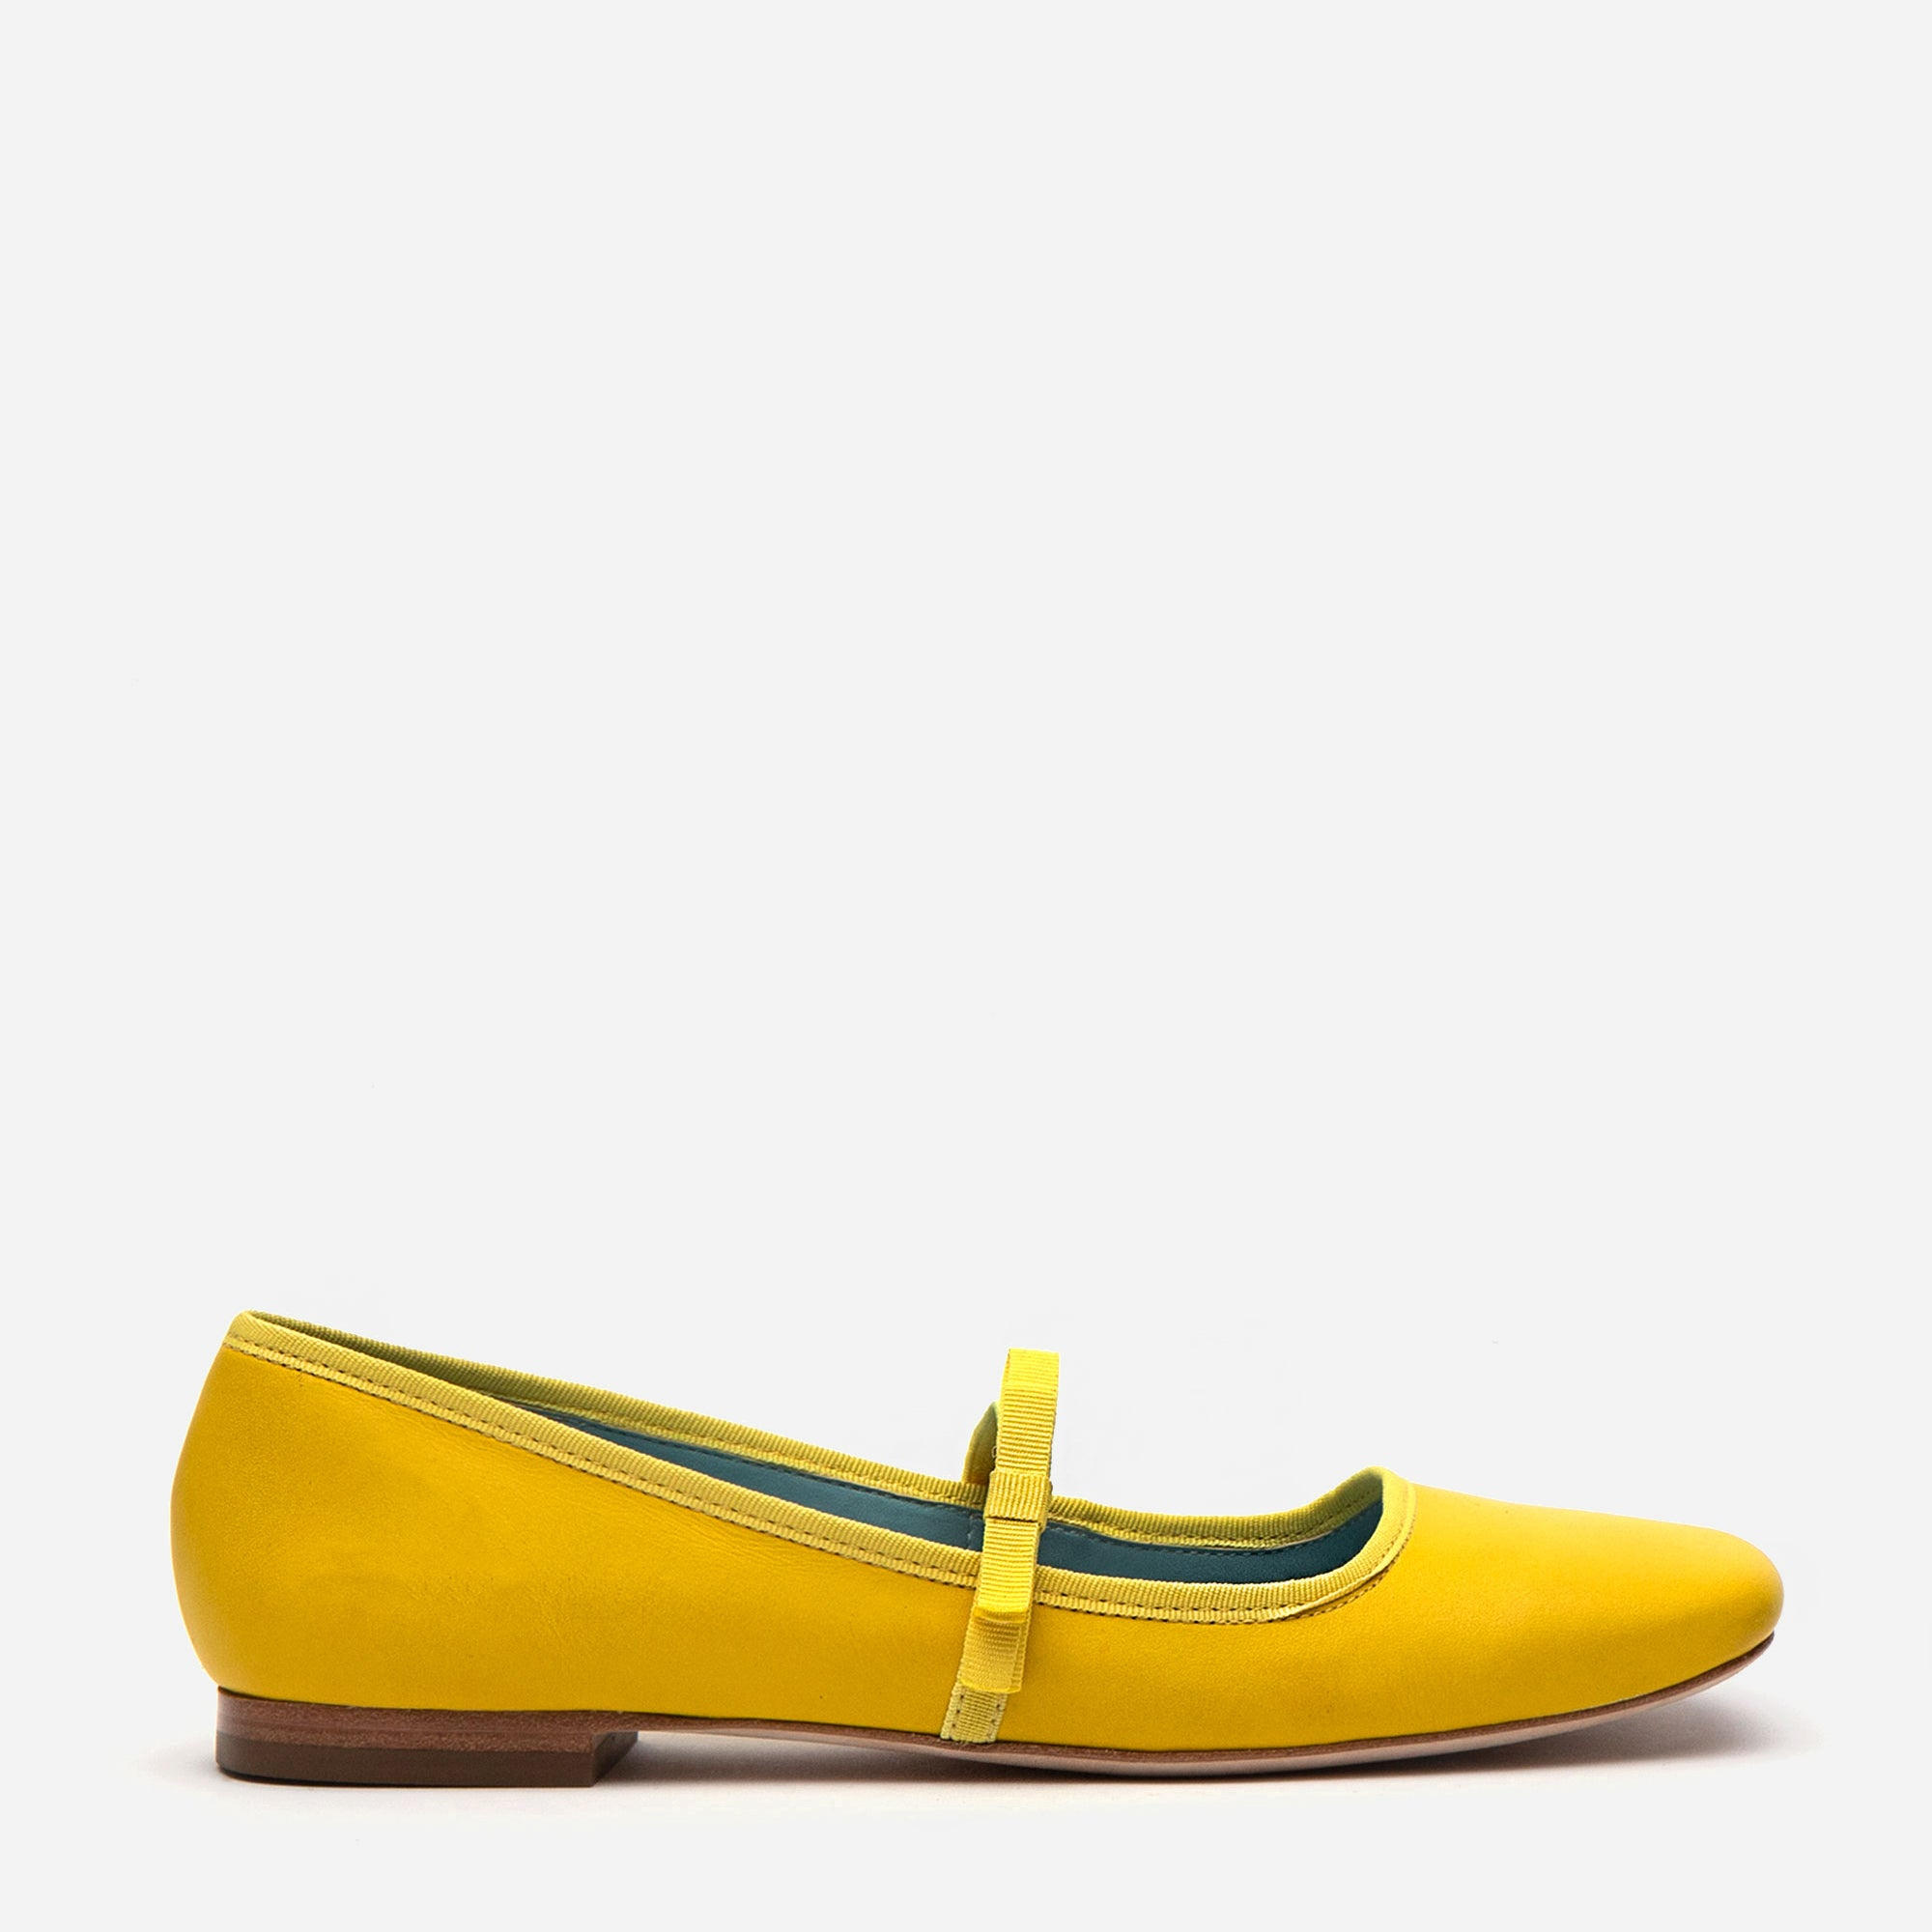 Jude Mary Jane Leather Flats Canary